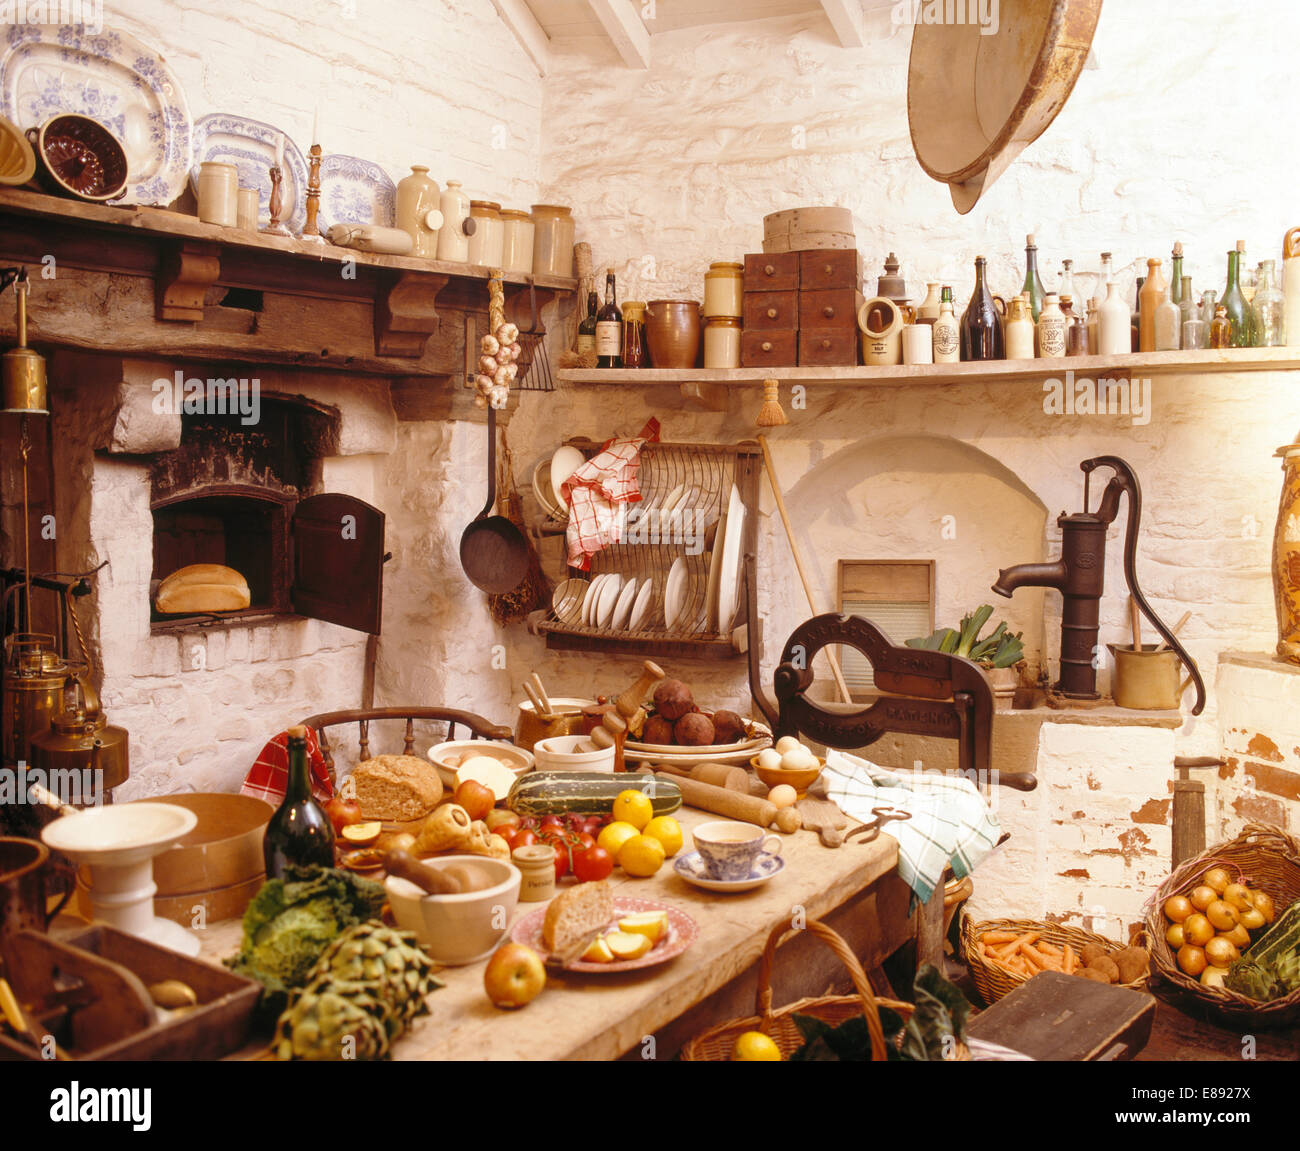 Stock Photo   Table Laden With Food In Cluttered Old Fashioned Kitchen